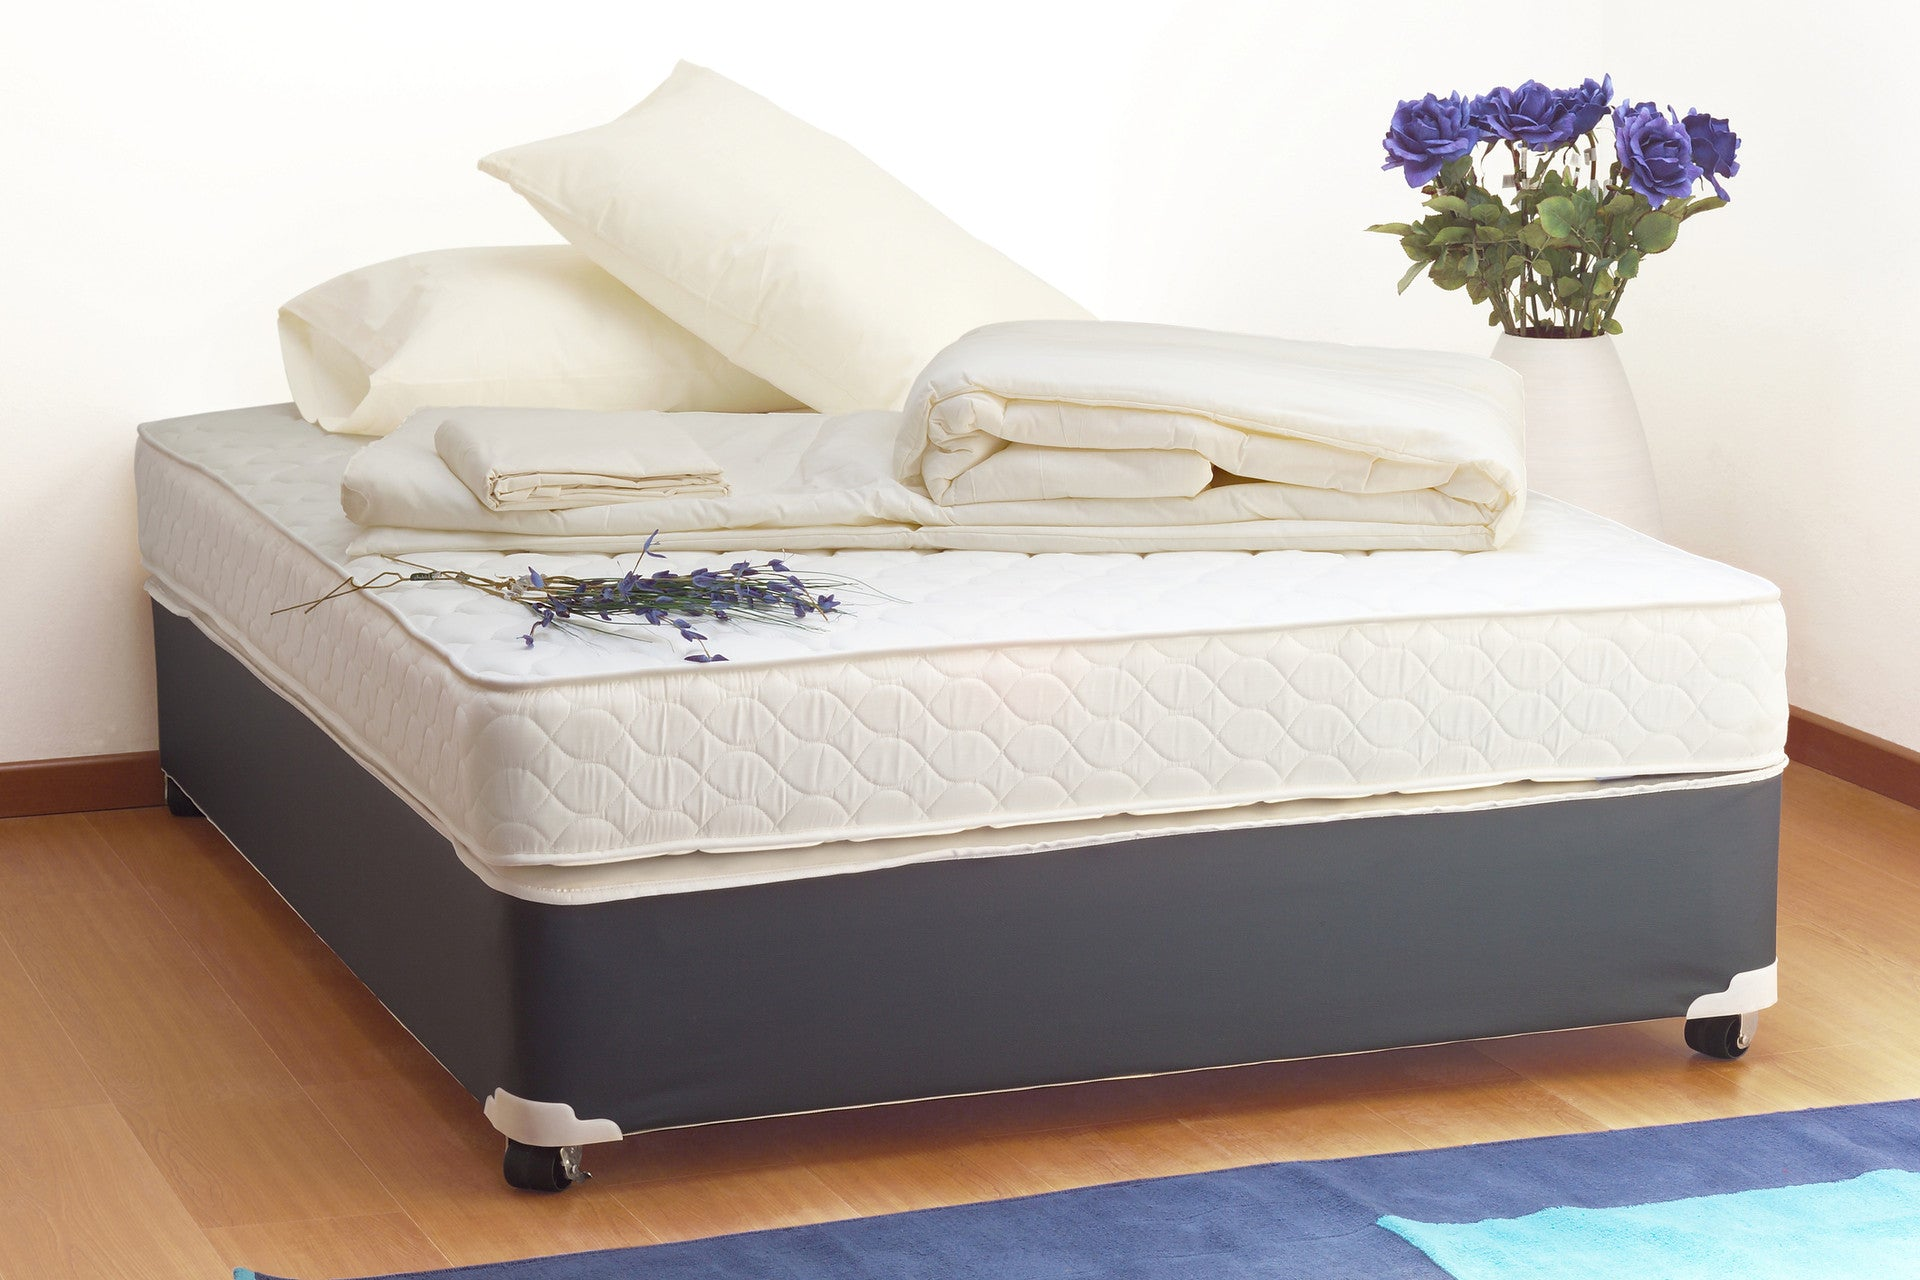 payless mattress great furniture at even greater prices